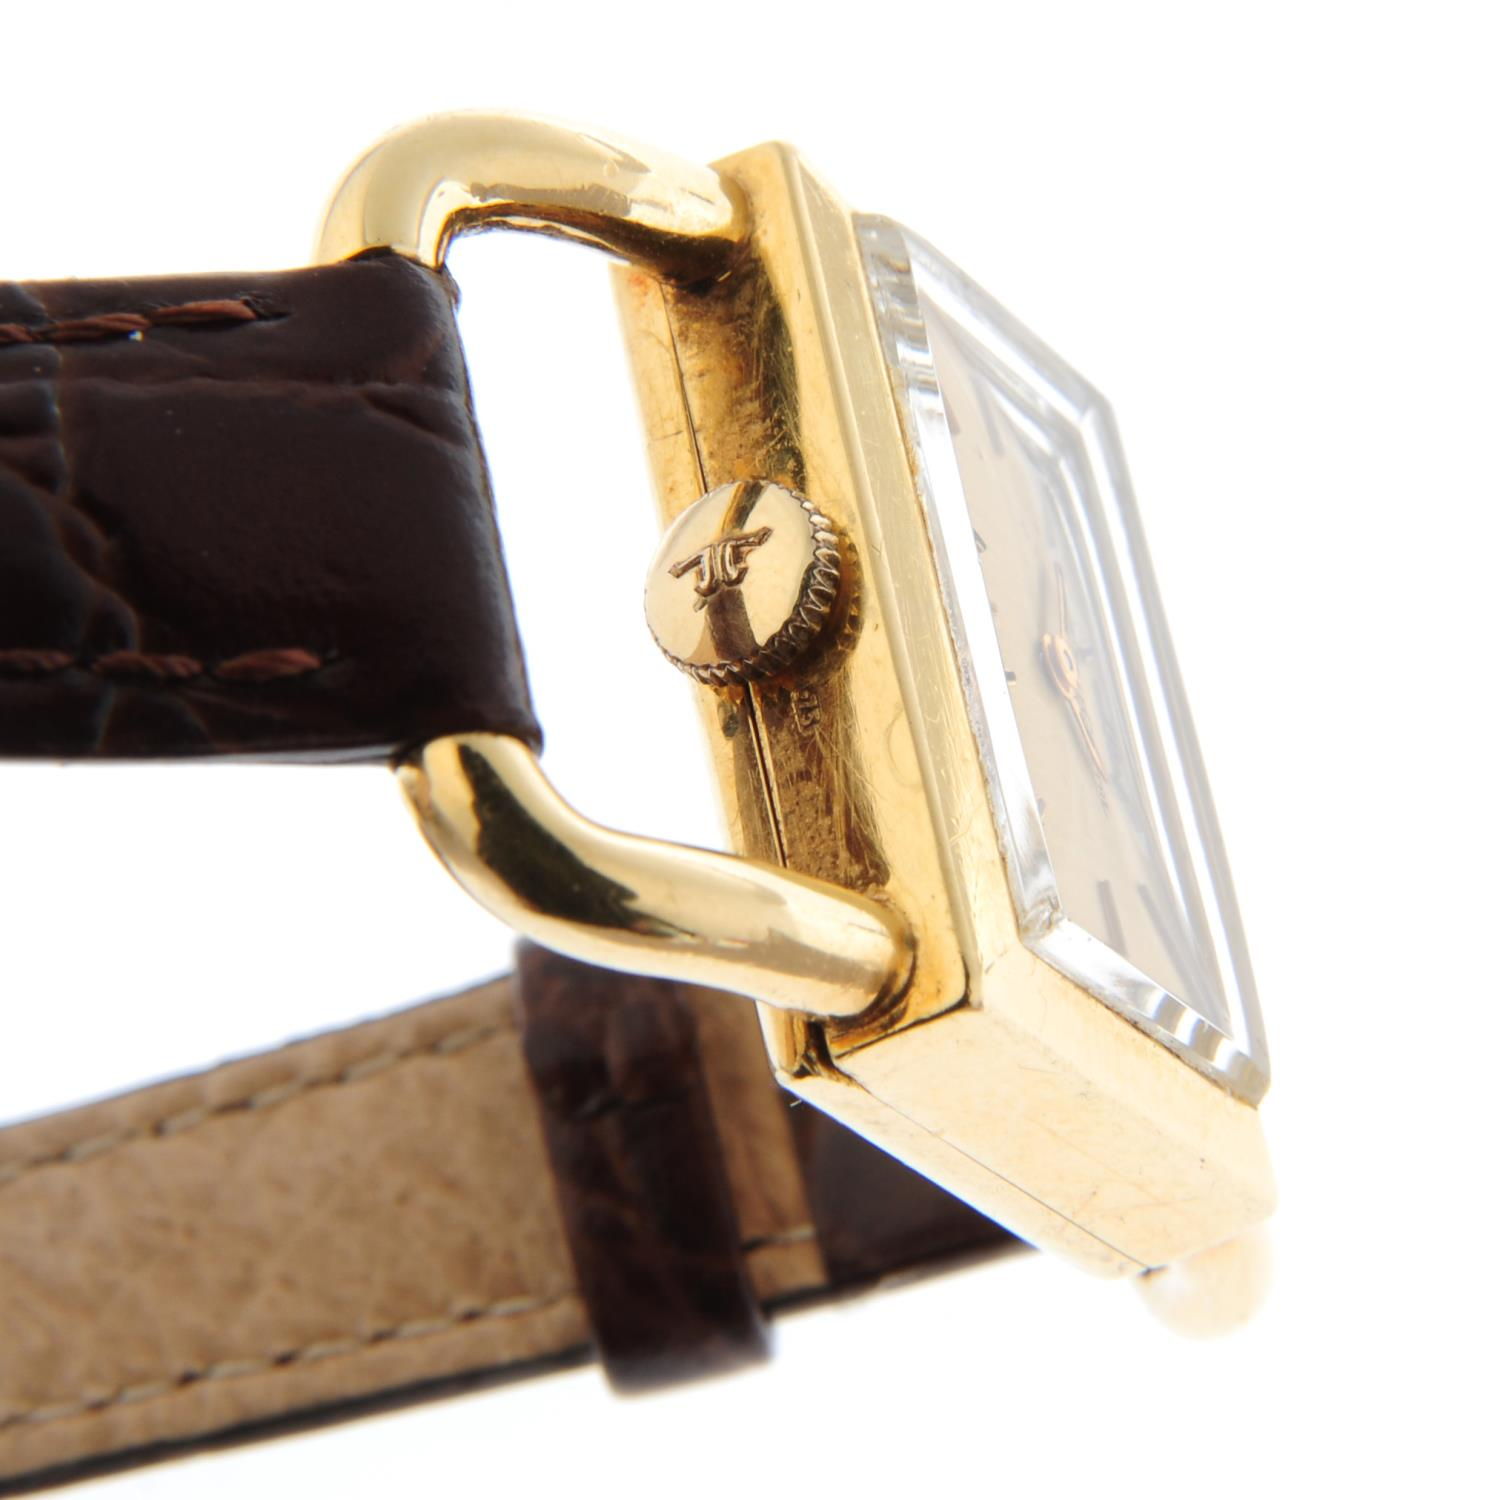 JAEGER-LECOULTRE - a wrist watch. - Image 3 of 4